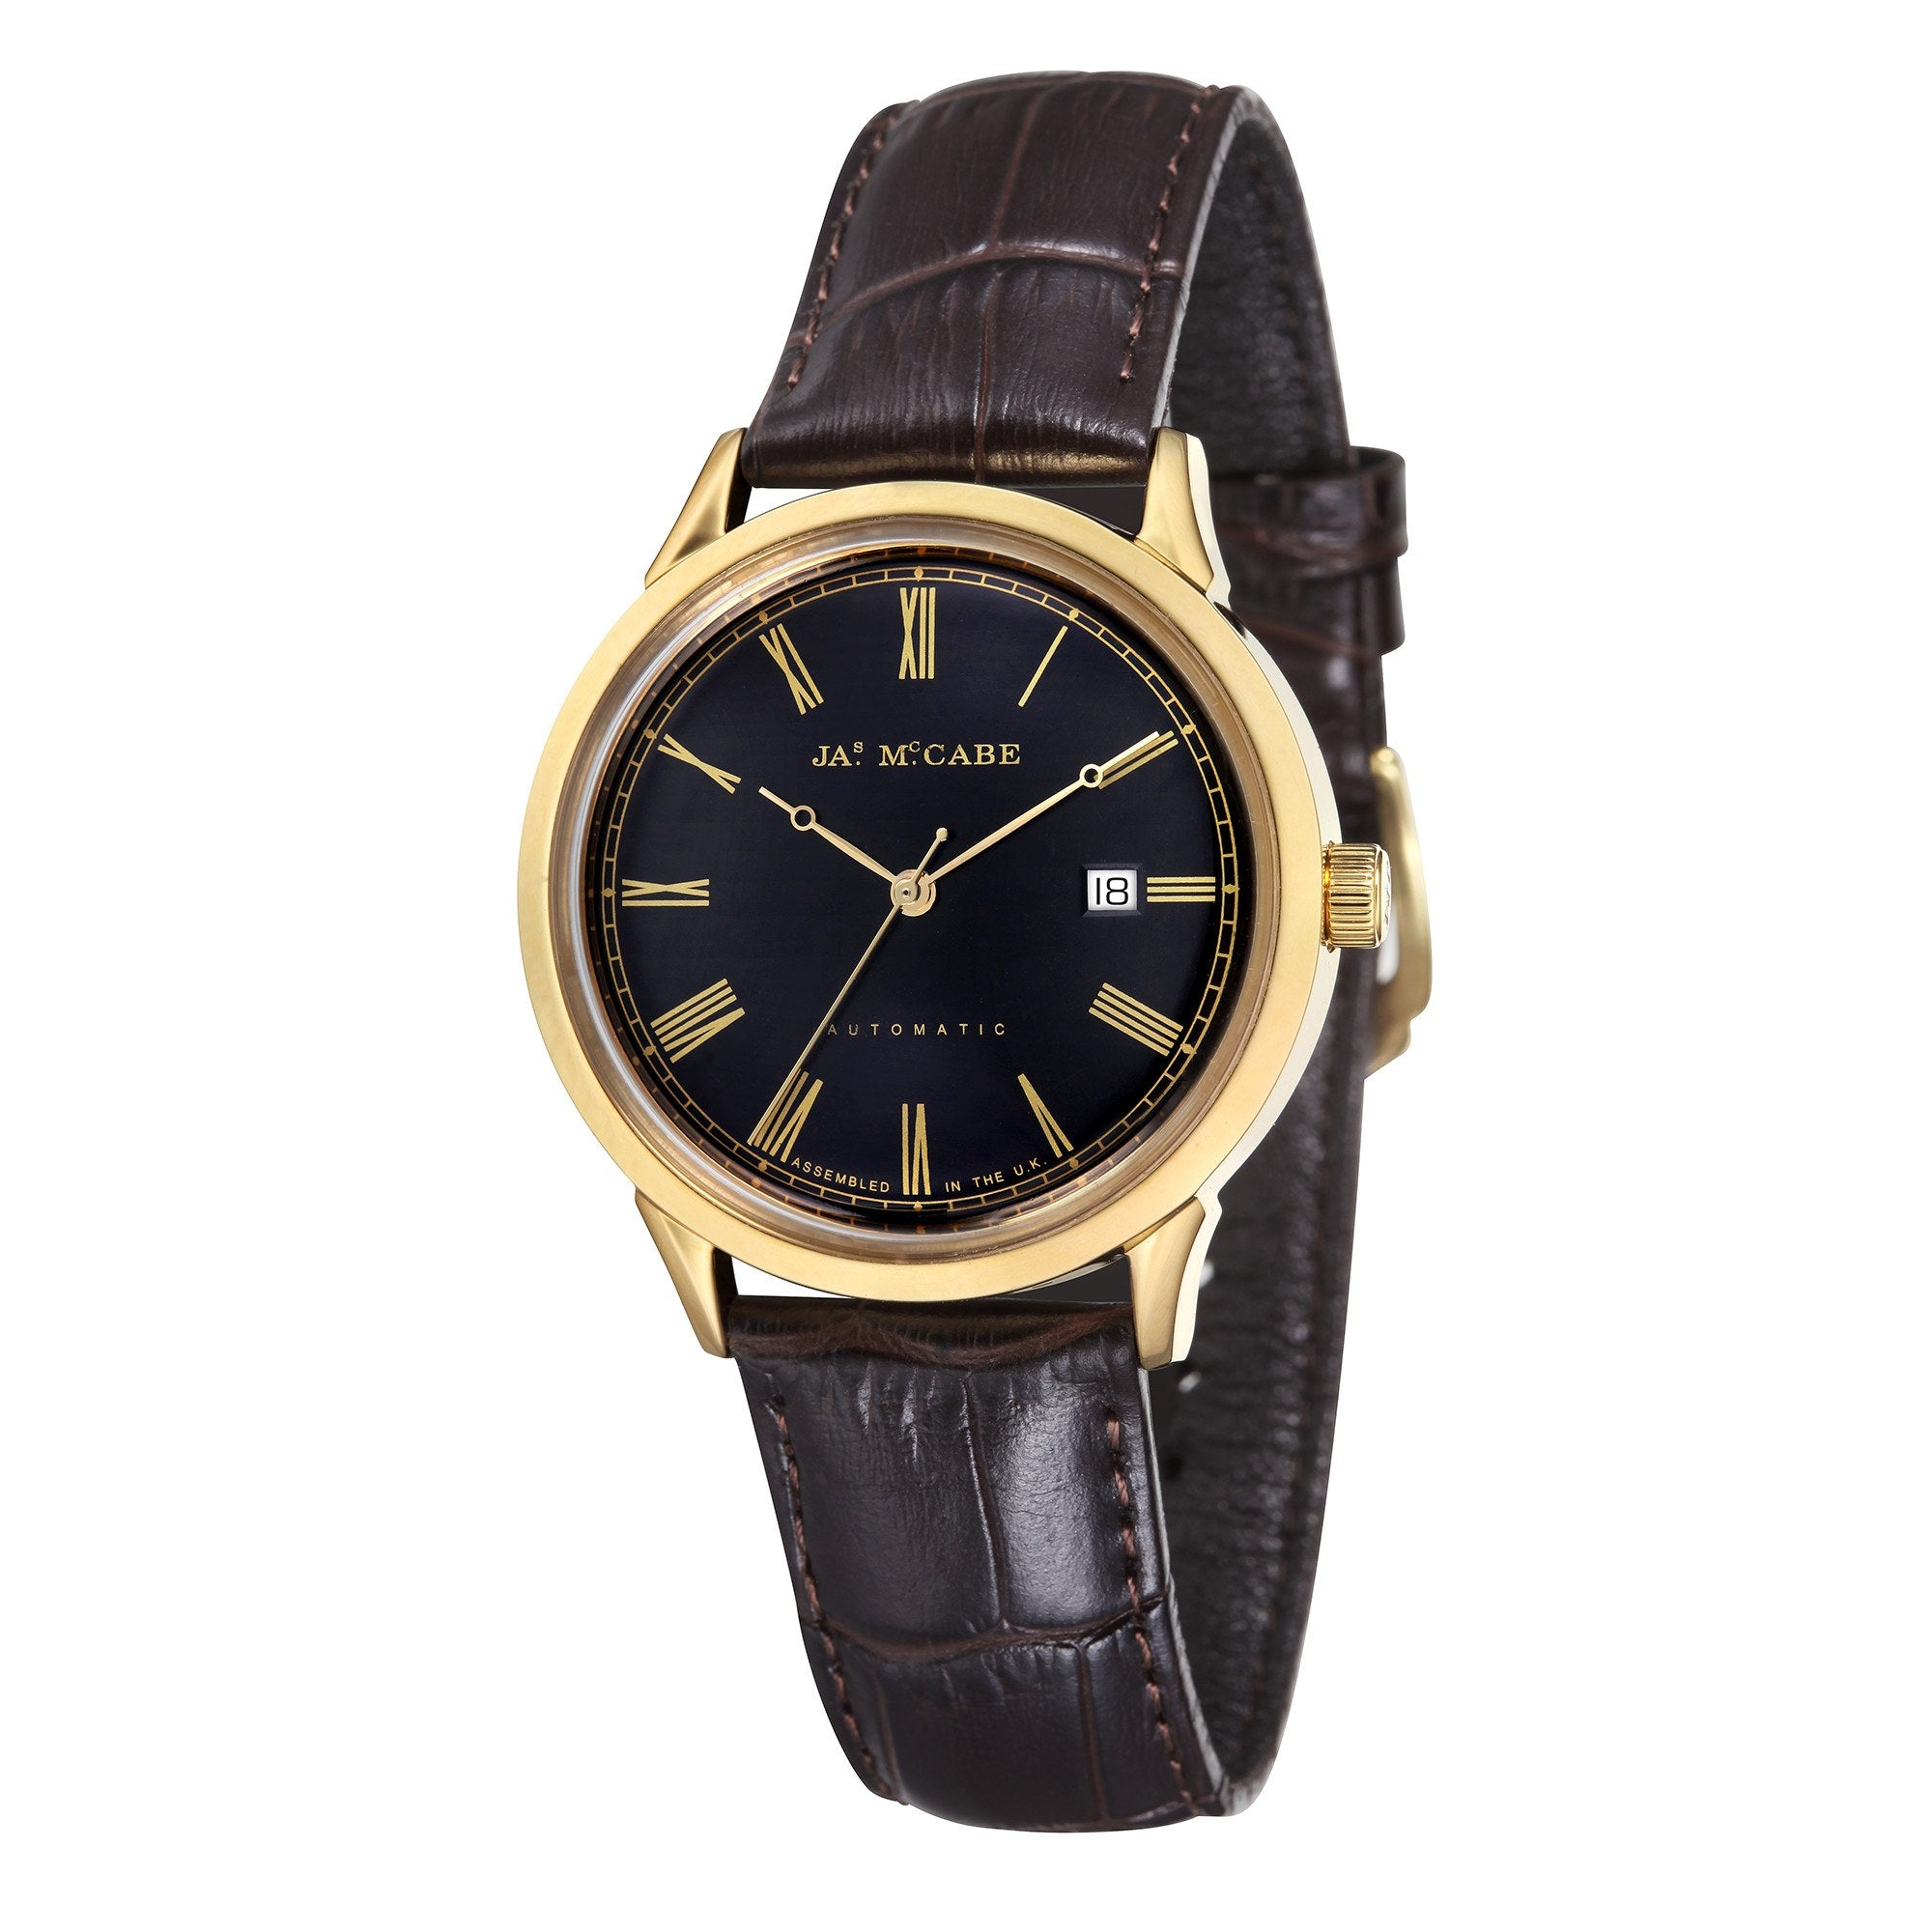 James Mccabe Men's JM-1021-03 Heritage Gold Automatic Watch with Dark Brown Leather Strap